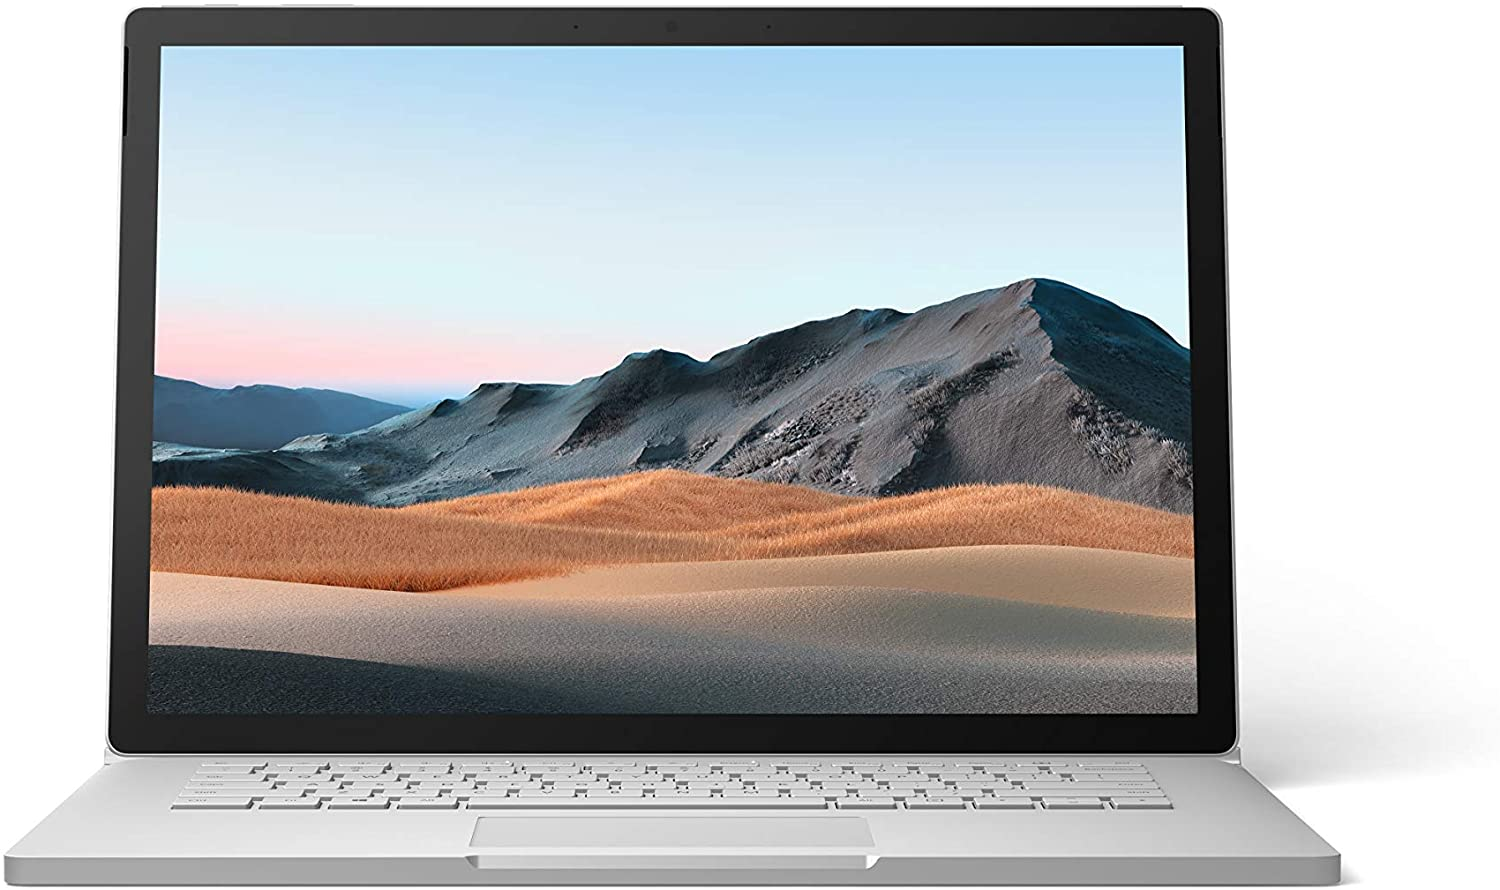 Ultrabook Microsoft Surface Book 3 13.5 Touch Intel Core i7-1065G7 GTX 1650-4GB RAM 16GB SSD 256GB Windows 10 Home Platinum